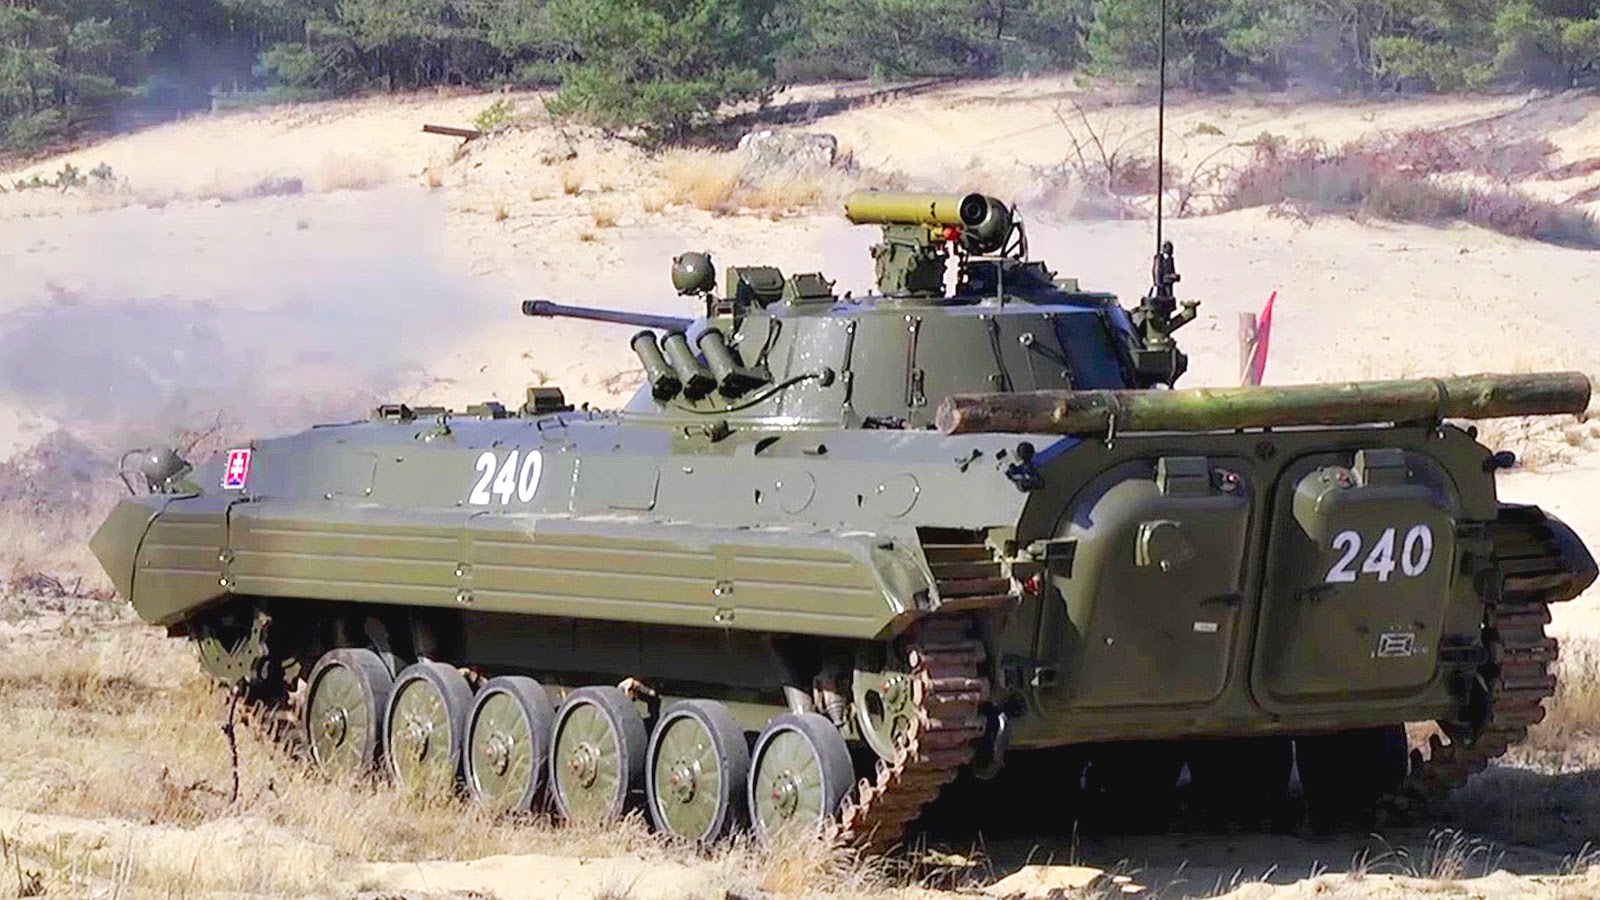 Stryker & Boyevaya Mashina Pekhoty Infantry Fighting Vehicle – Combined Weapons Range